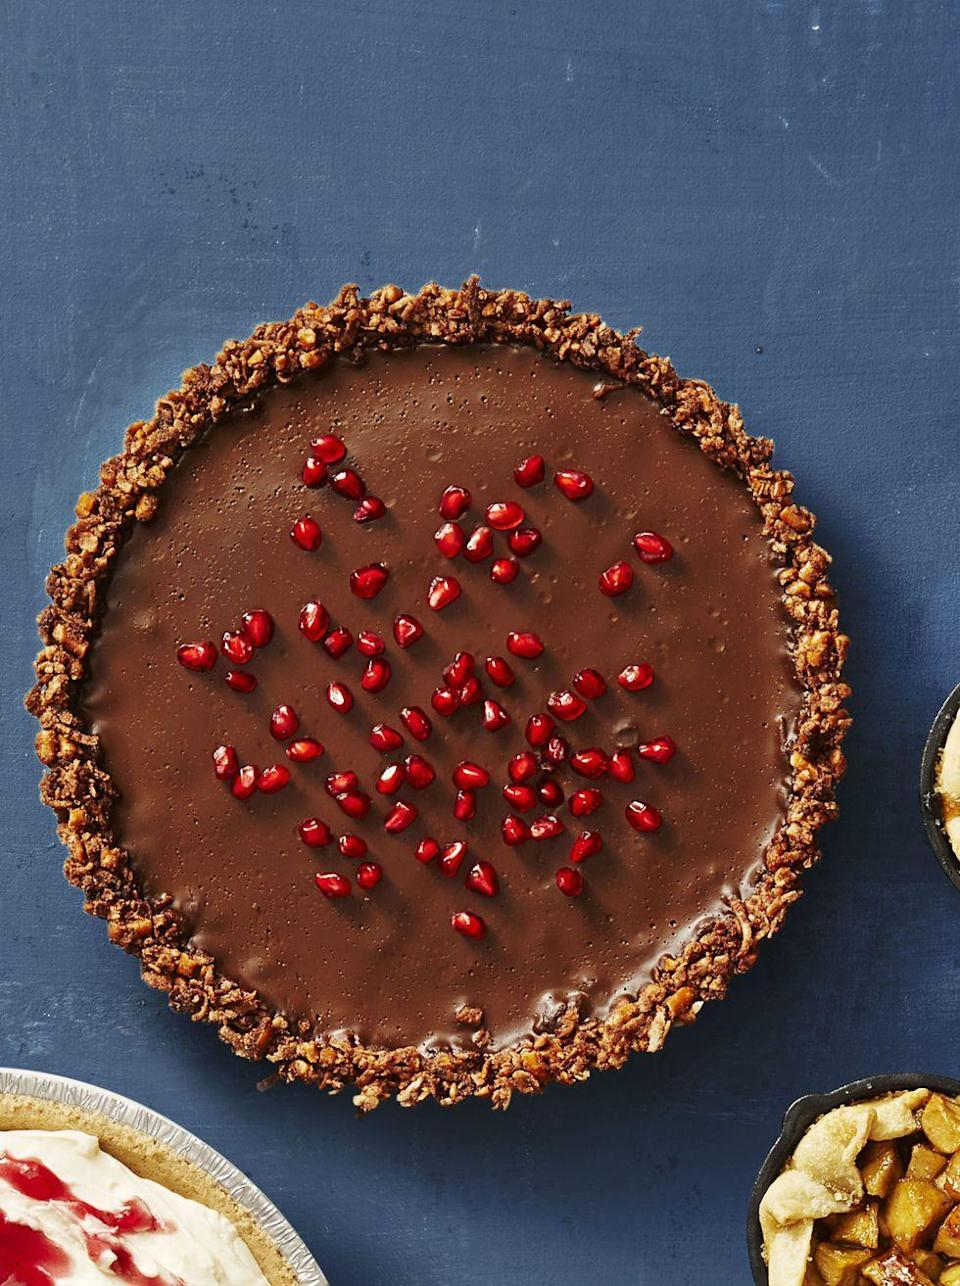 """<p>Keep this recipe in your back pocket: its pretzel crust and creamy coconut-milk center are both vegan <em>and</em> <a href=""""https://www.google.com/search?q=site:www.goodhousekeeping.com+gluten+free"""" rel=""""nofollow noopener"""" target=""""_blank"""" data-ylk=""""slk:gluten free"""" class=""""link rapid-noclick-resp"""">gluten free</a>, making this dessert a crowd pleaser for everyone. </p><p><em><a href=""""https://www.goodhousekeeping.com/food-recipes/a41082/gluten-free-chocolate-ganache-tart-recipe/"""" rel=""""nofollow noopener"""" target=""""_blank"""" data-ylk=""""slk:Get the recipe for Gluten-Free Chocolate Ganache Tart »"""" class=""""link rapid-noclick-resp"""">Get the recipe for Gluten-Free Chocolate Ganache Tart »</a></em> </p><p><strong>RELATED: </strong><a href=""""https://www.goodhousekeeping.com/holidays/thanksgiving-ideas/g29610609/vegan-thanksgiving-desserts/"""" rel=""""nofollow noopener"""" target=""""_blank"""" data-ylk=""""slk:25 Easy Vegan Thanksgiving Desserts That Everyone at Your Table Will Love"""" class=""""link rapid-noclick-resp"""">25 Easy Vegan Thanksgiving Desserts That Everyone at Your Table Will Love</a></p>"""